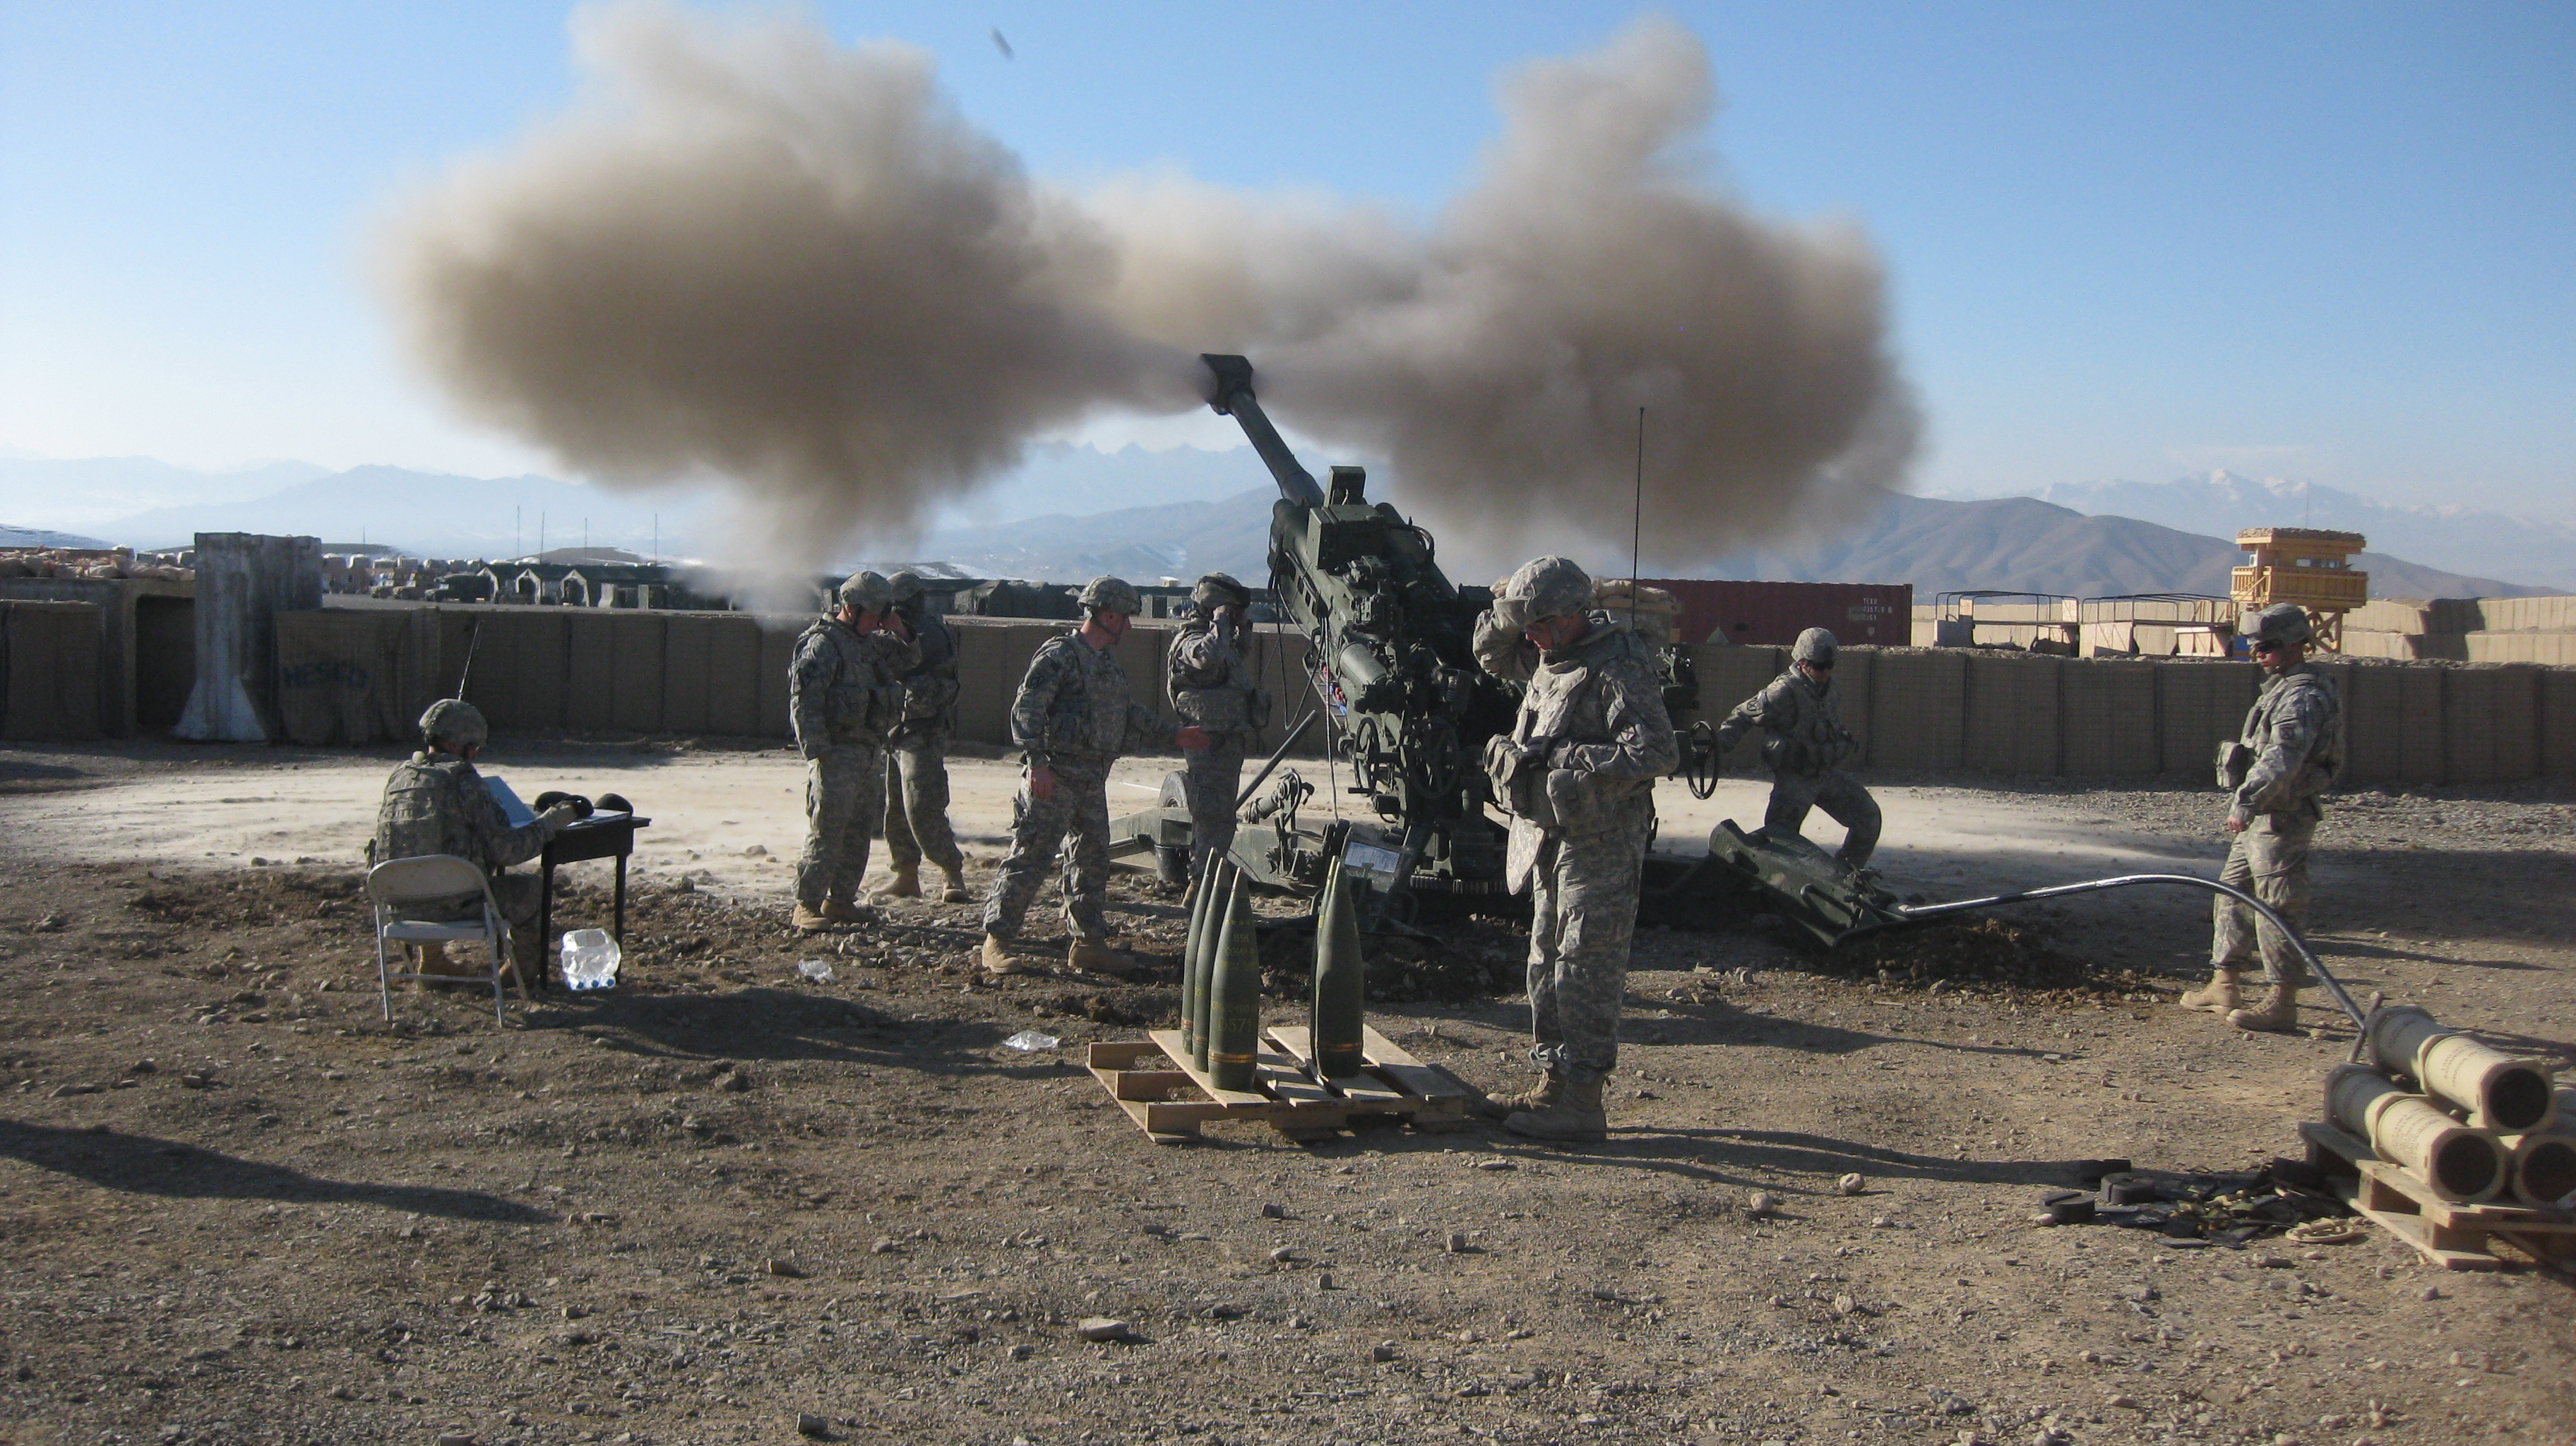 M777 howitzer in action. Source - Net.